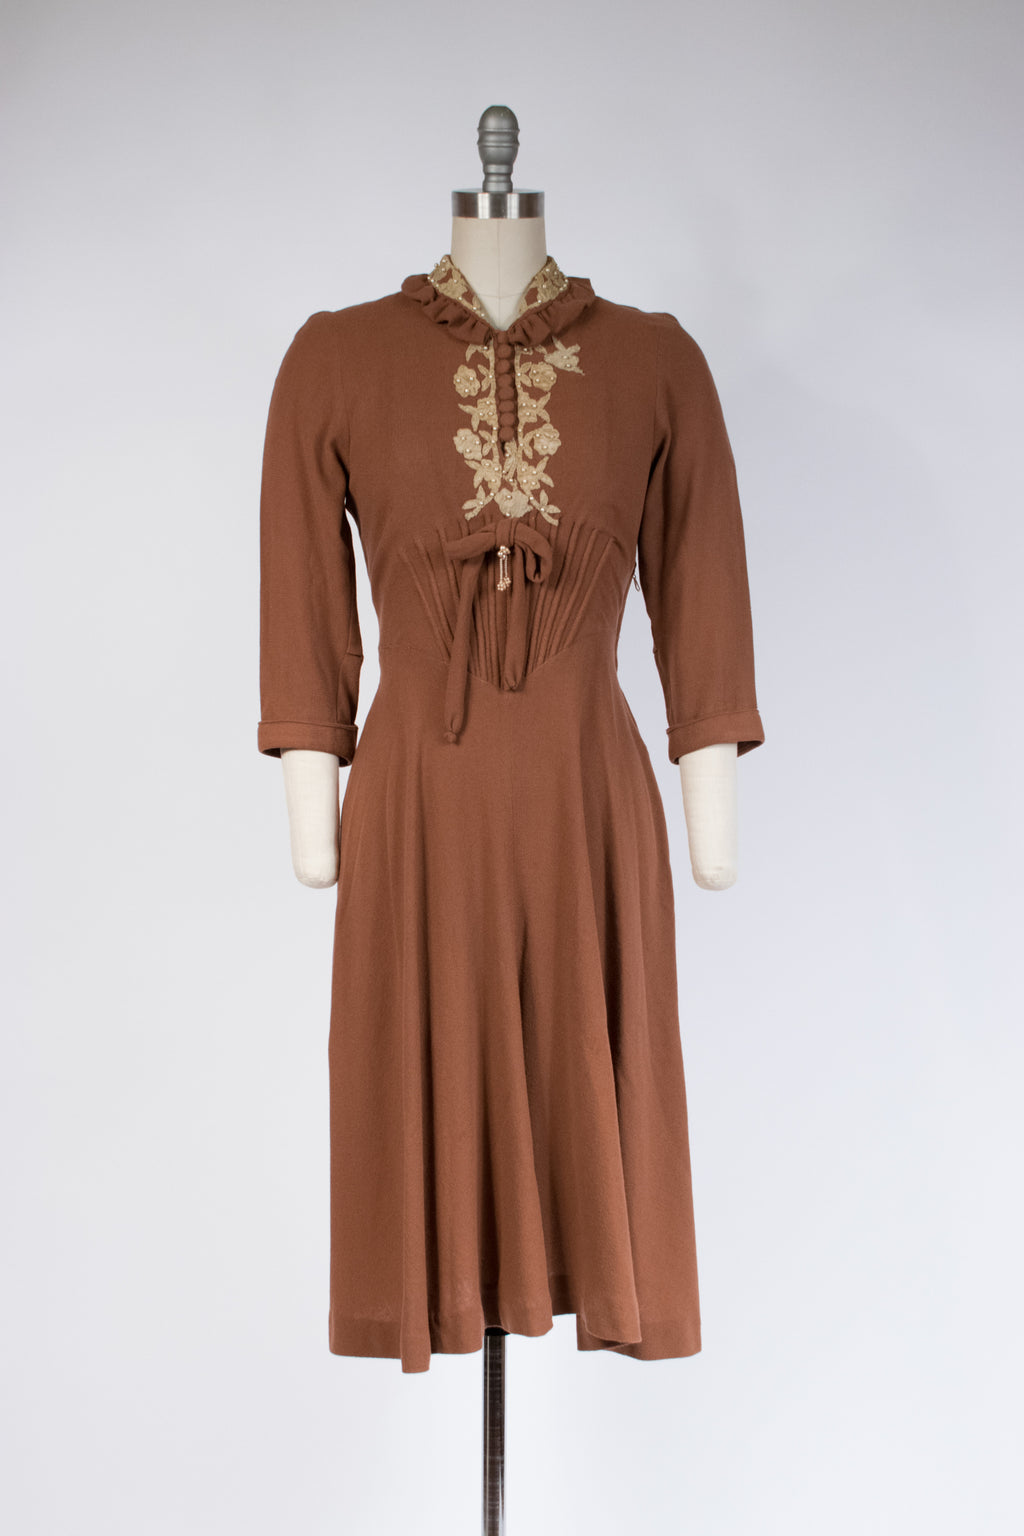 RESERVED Splendid Late 1930s Trapunto Wool Dress with Floral Applique